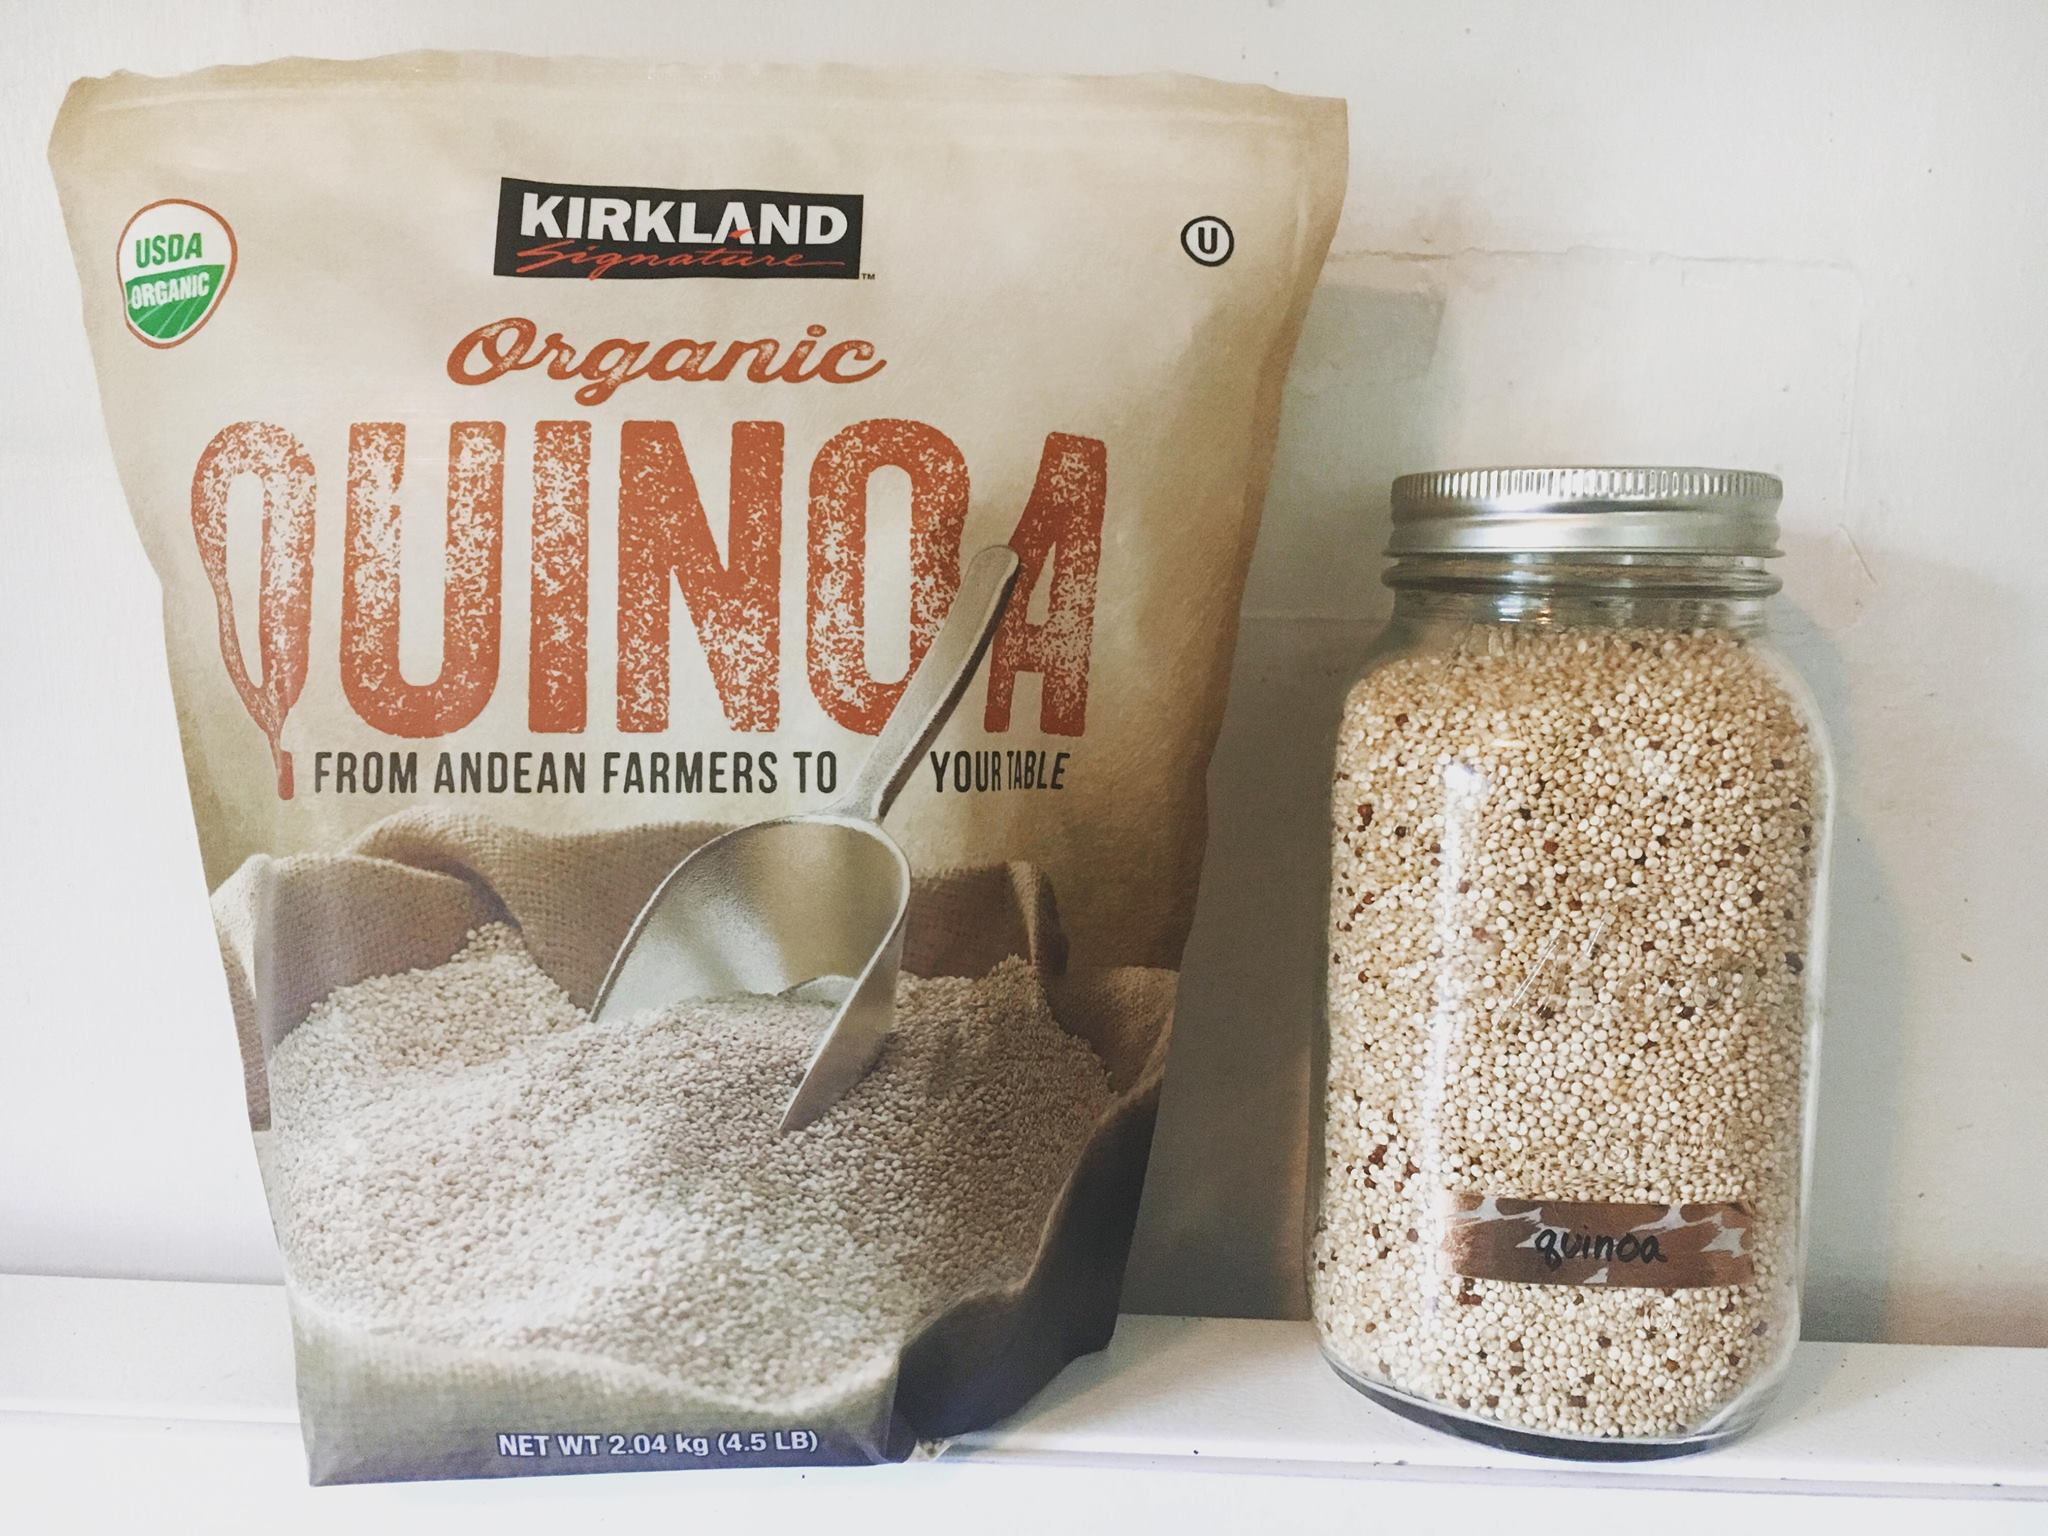 Quinoa is one of my top non meat protein sources but did you know there are dozens more? Learn about more vegan protein options for even the most meat lover person you know! www.realisticplantbasedmama.com